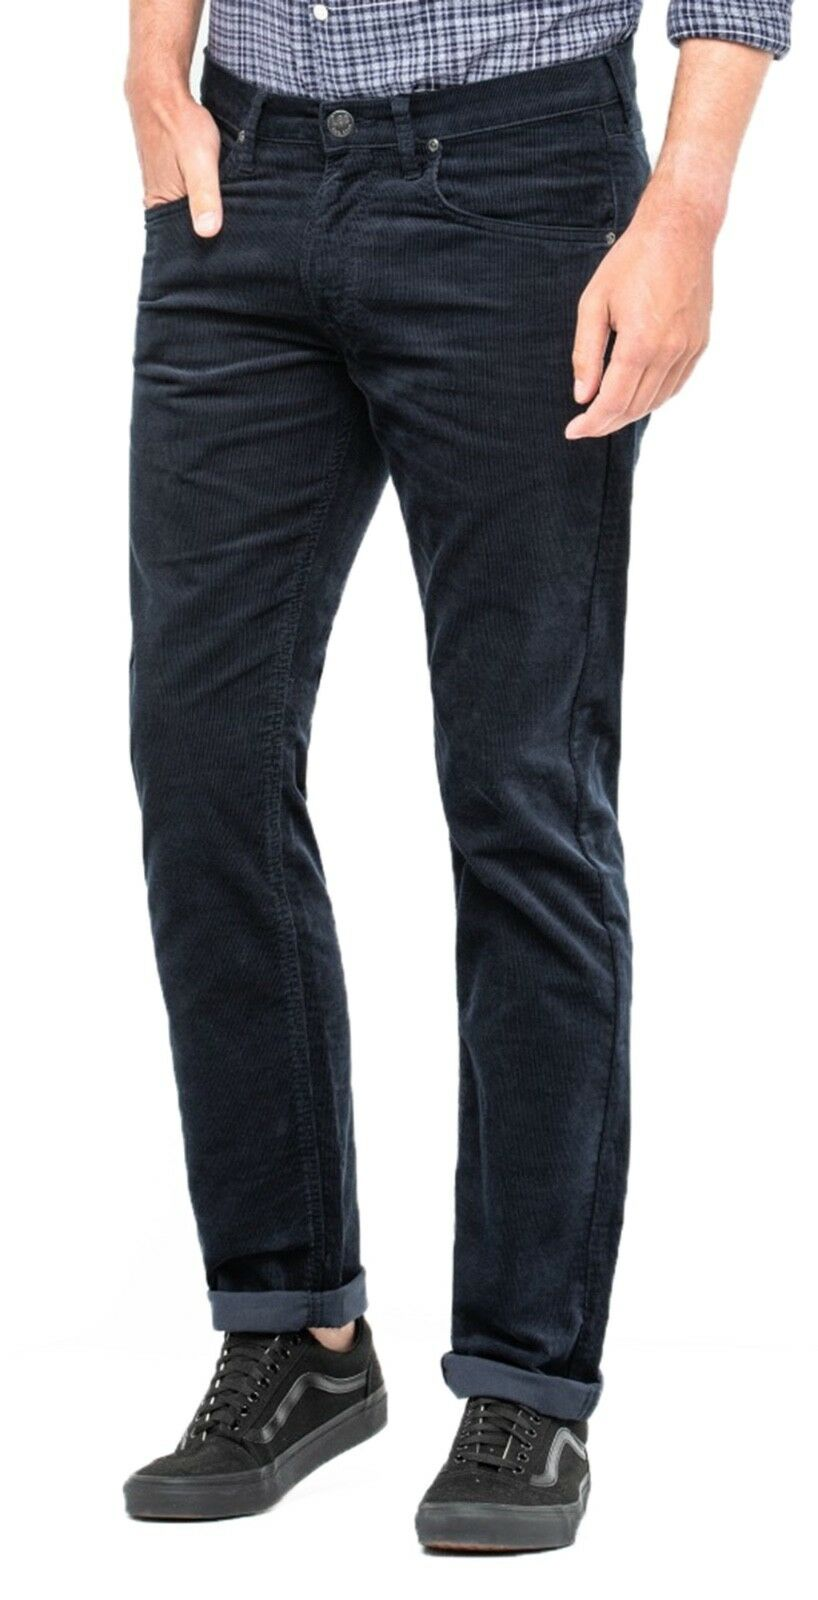 Lee  Daren Zip Regular Fit Slim cables de Marina oscuro Stretch Jeans Pantalones De Pana  bienvenido a orden